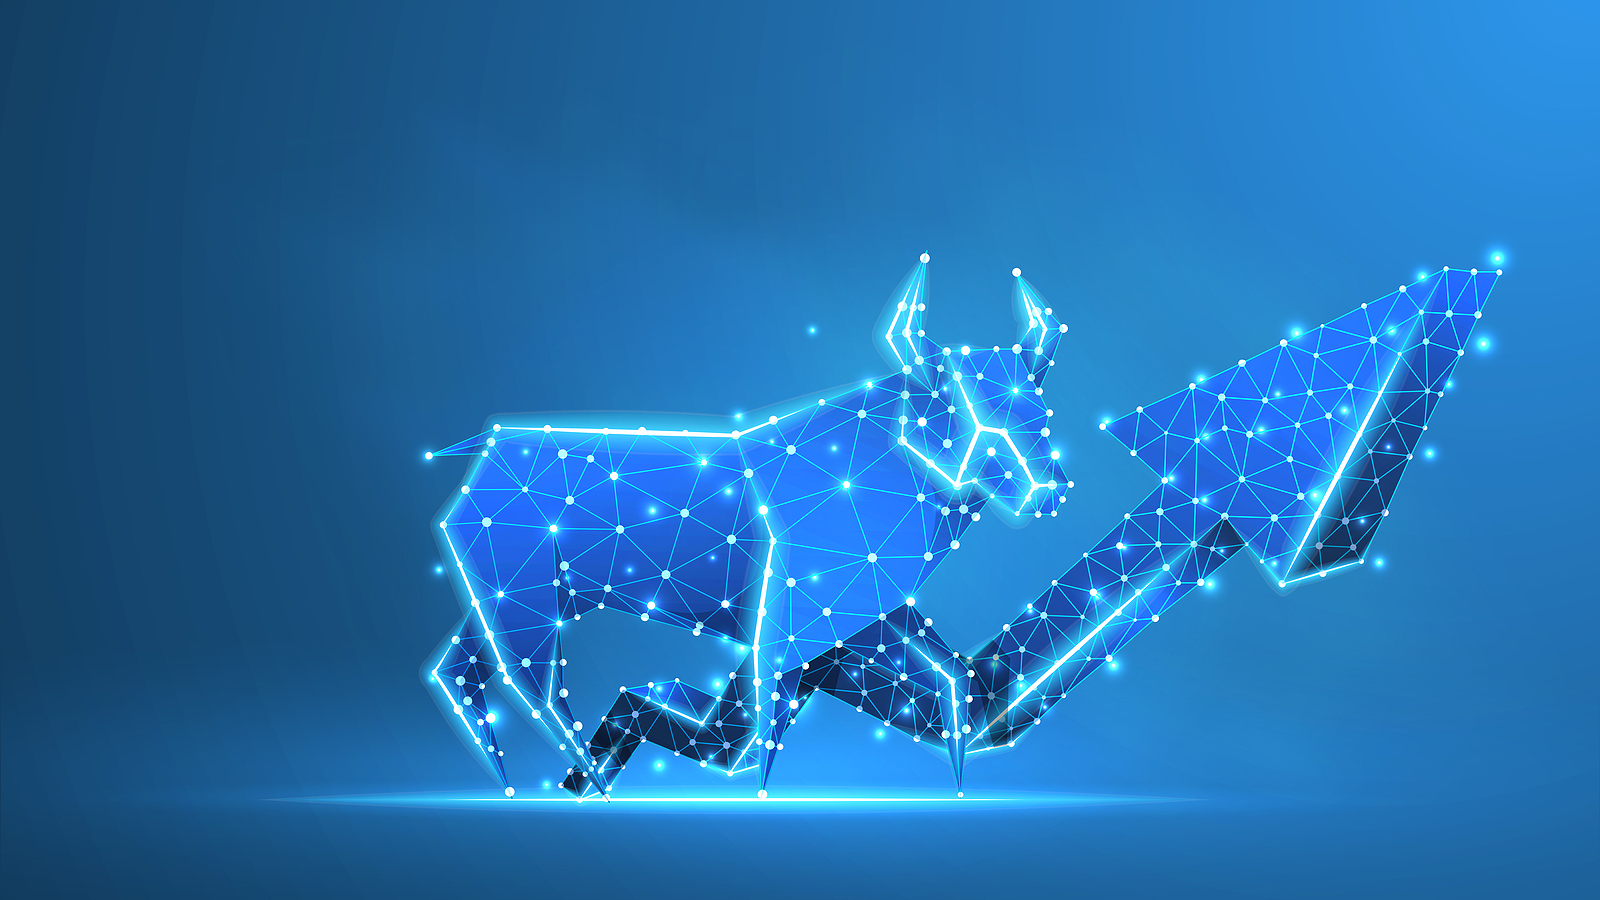 Bullish constellation stock market